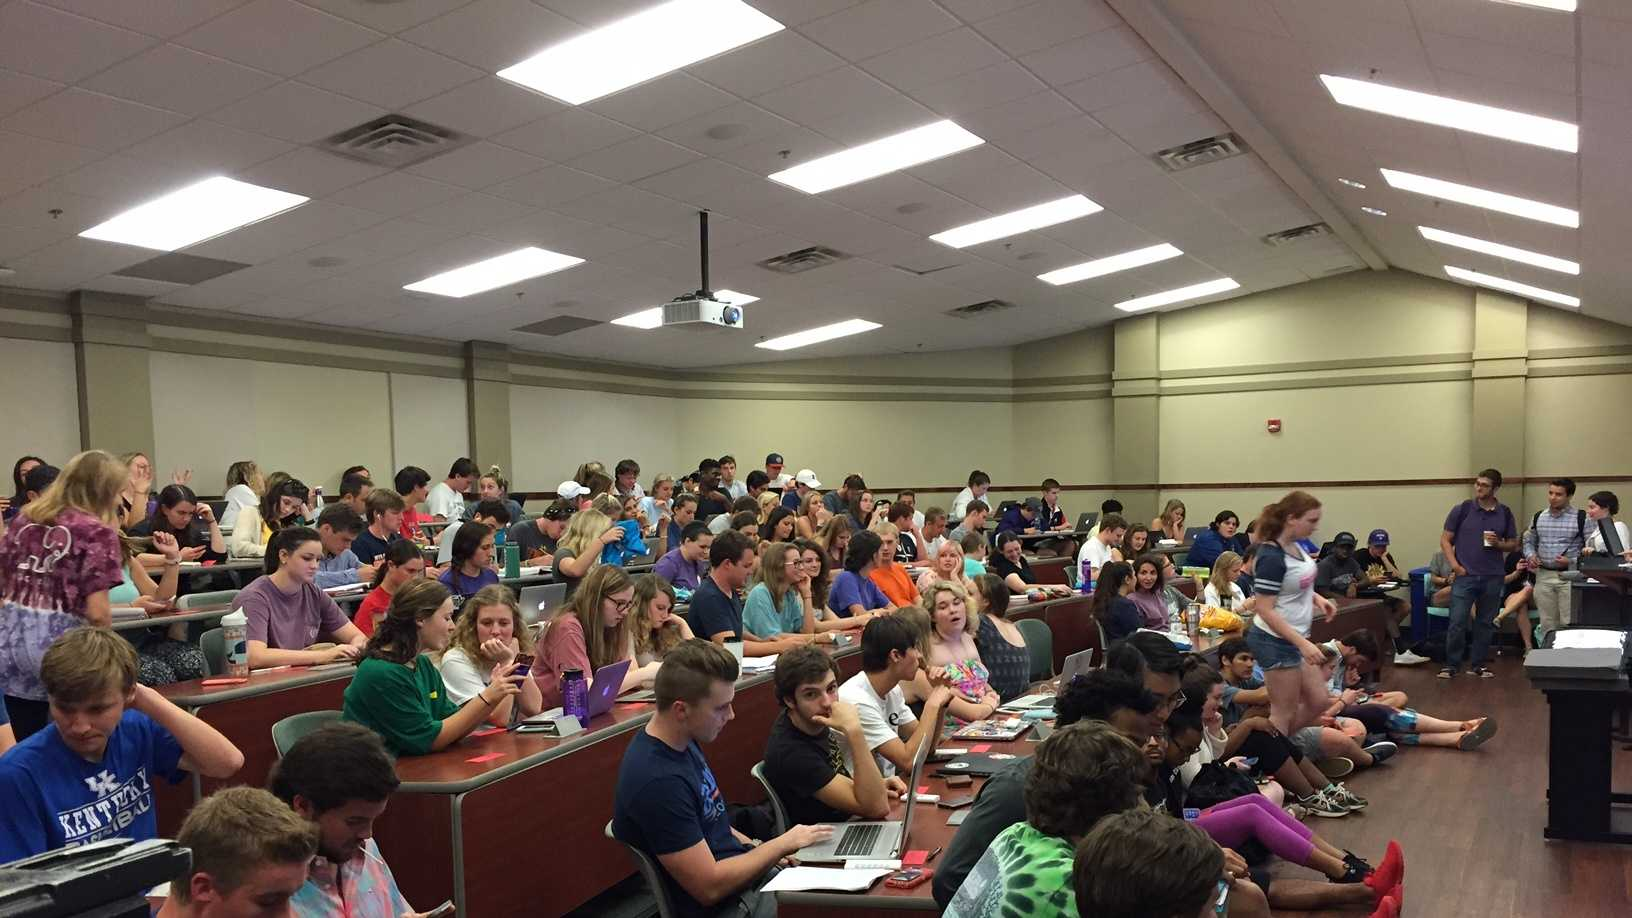 More than 100 Furman students evaluated presidential candidates during first debate.